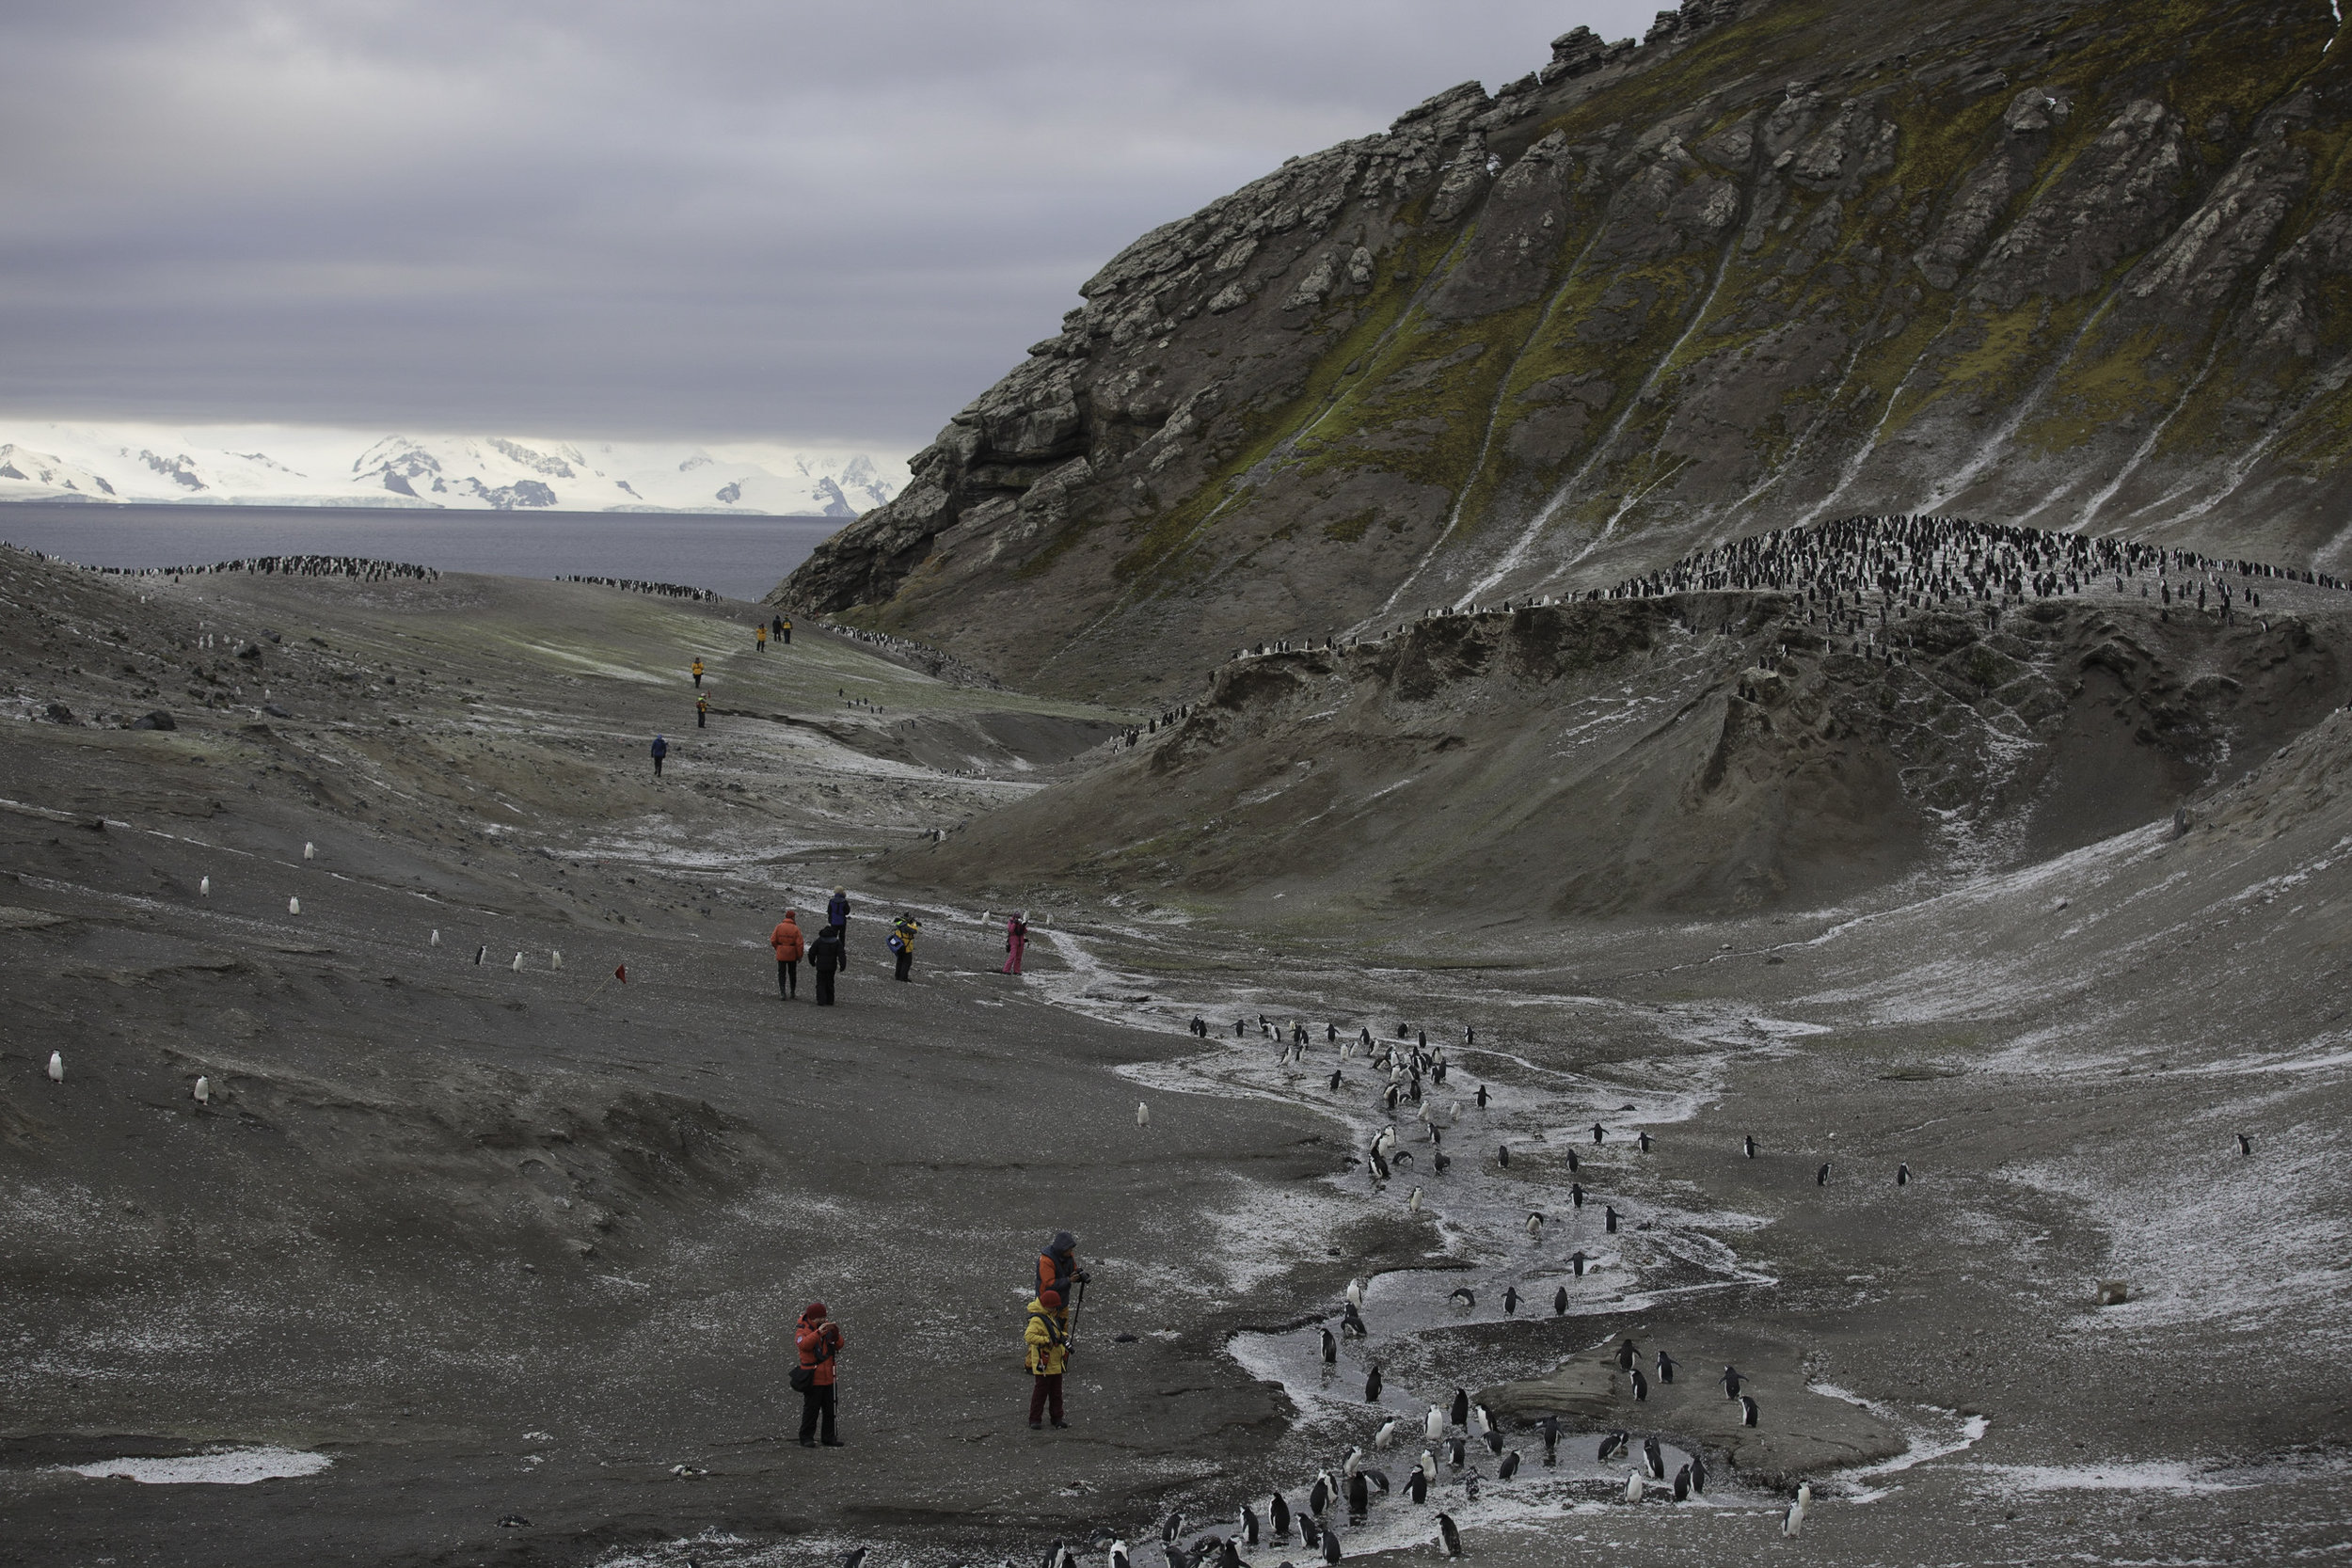 Note, all the white is penguin feathers, not snow. Bailey Head, Deception Island.